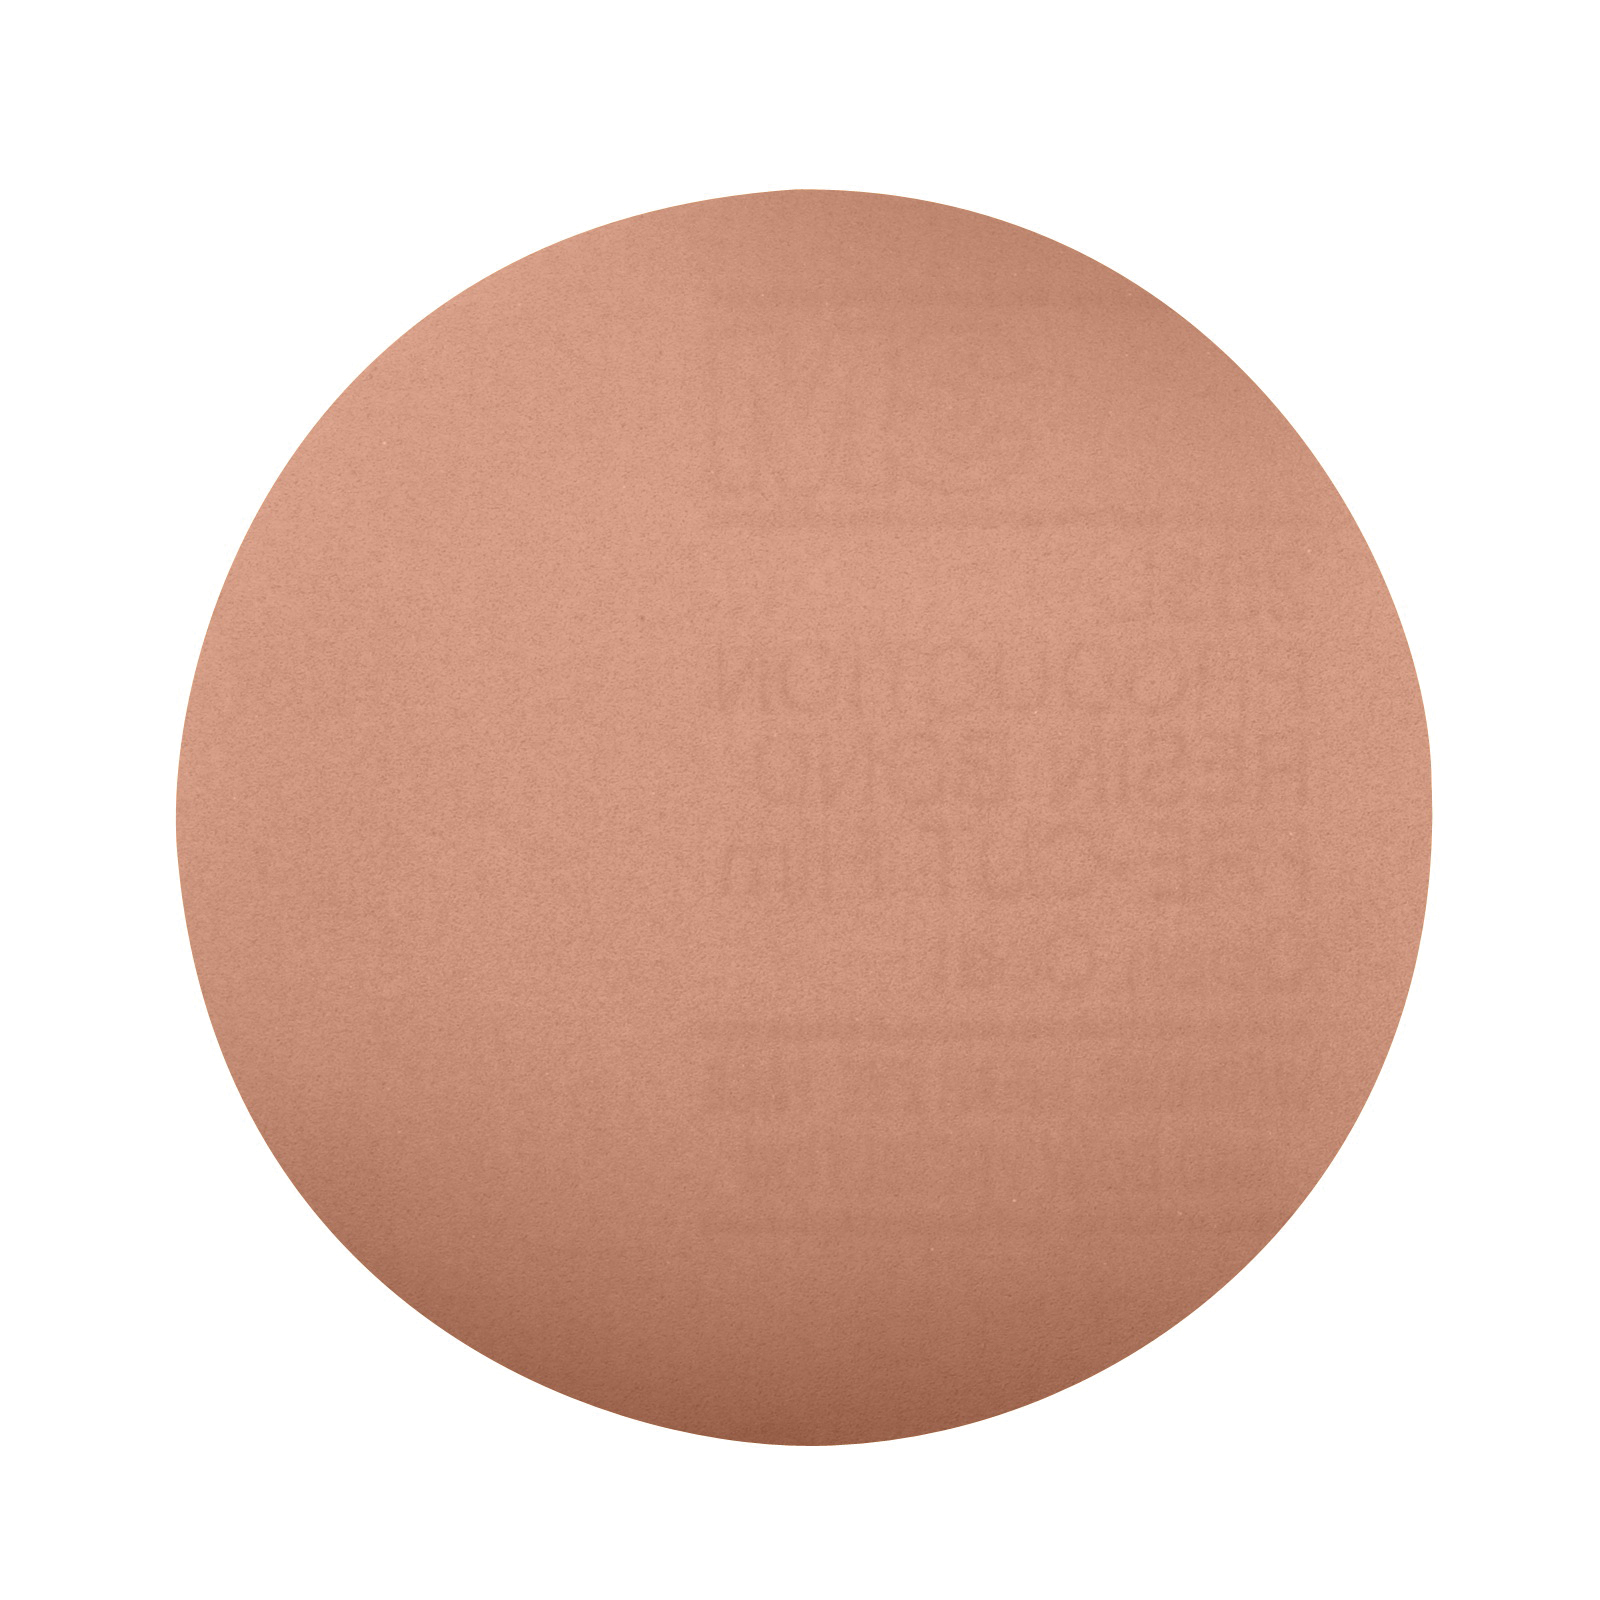 3M™ 051111-54411 Type D Microfinishing Open Coated PSA Coated Abrasive Disc, 5 in Dia, 100 micron Grit, Very Fine Grade, Aluminum Oxide Abrasive, Polyester Film Backing